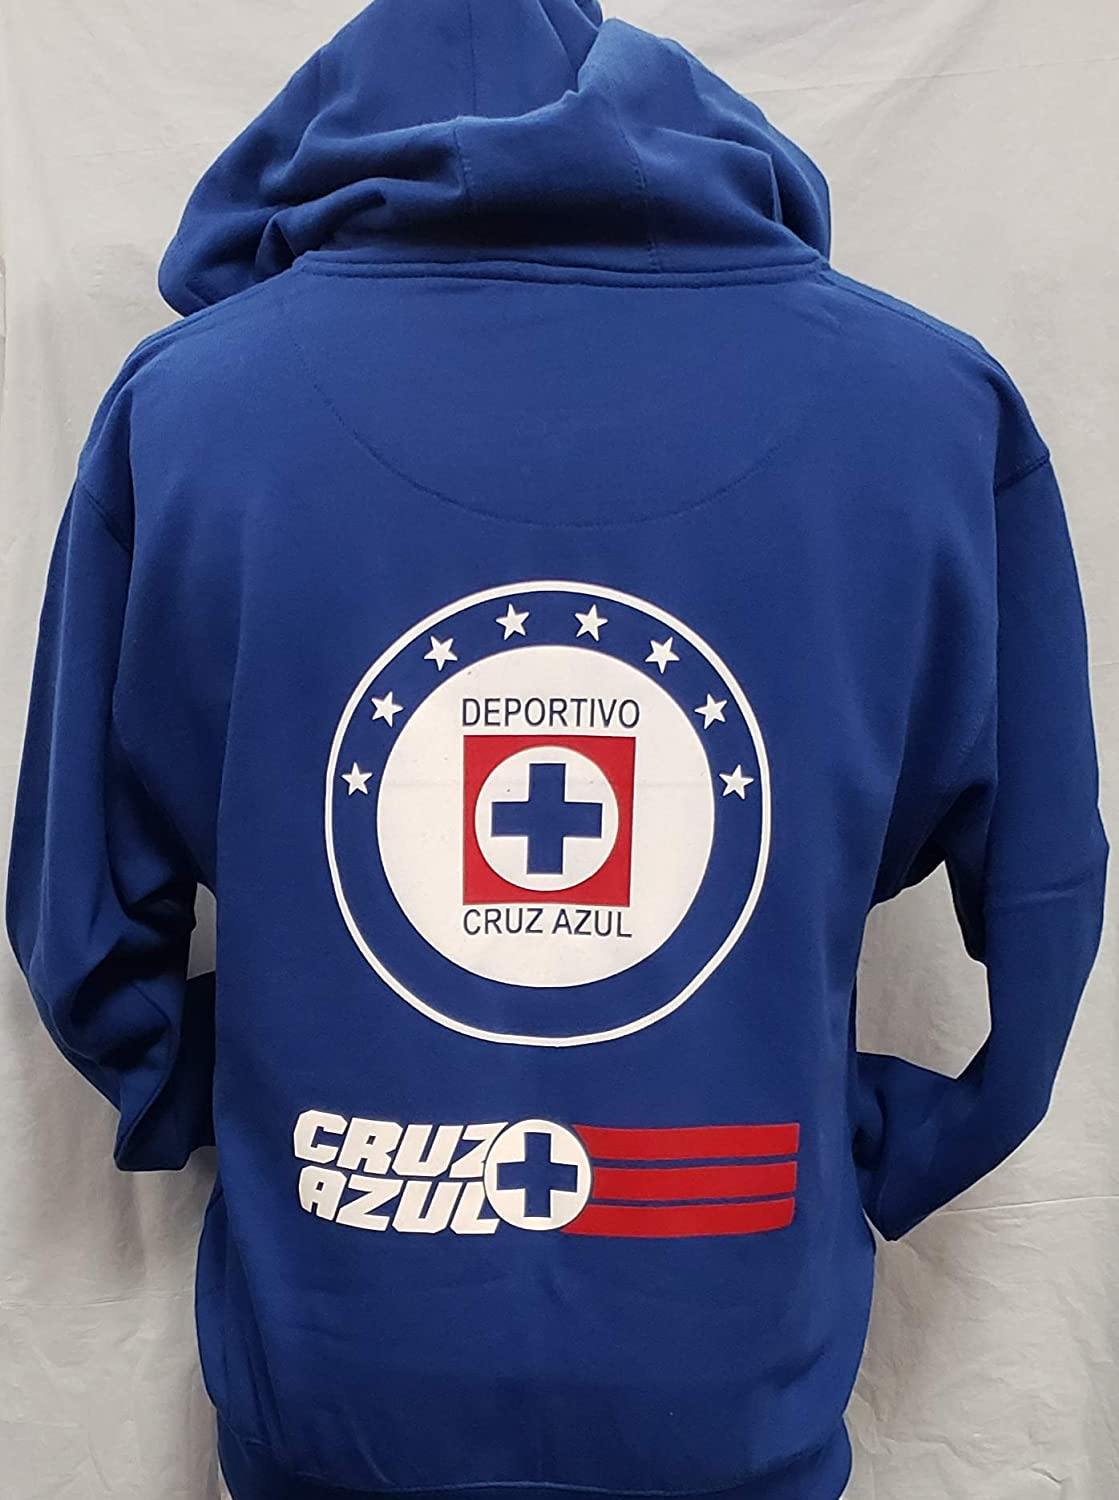 Amazon.com : New Club Deportivo Cruz Azul La Maquina Sudadera De Gorro Zip up Hoodie Size L : Sports & Outdoors